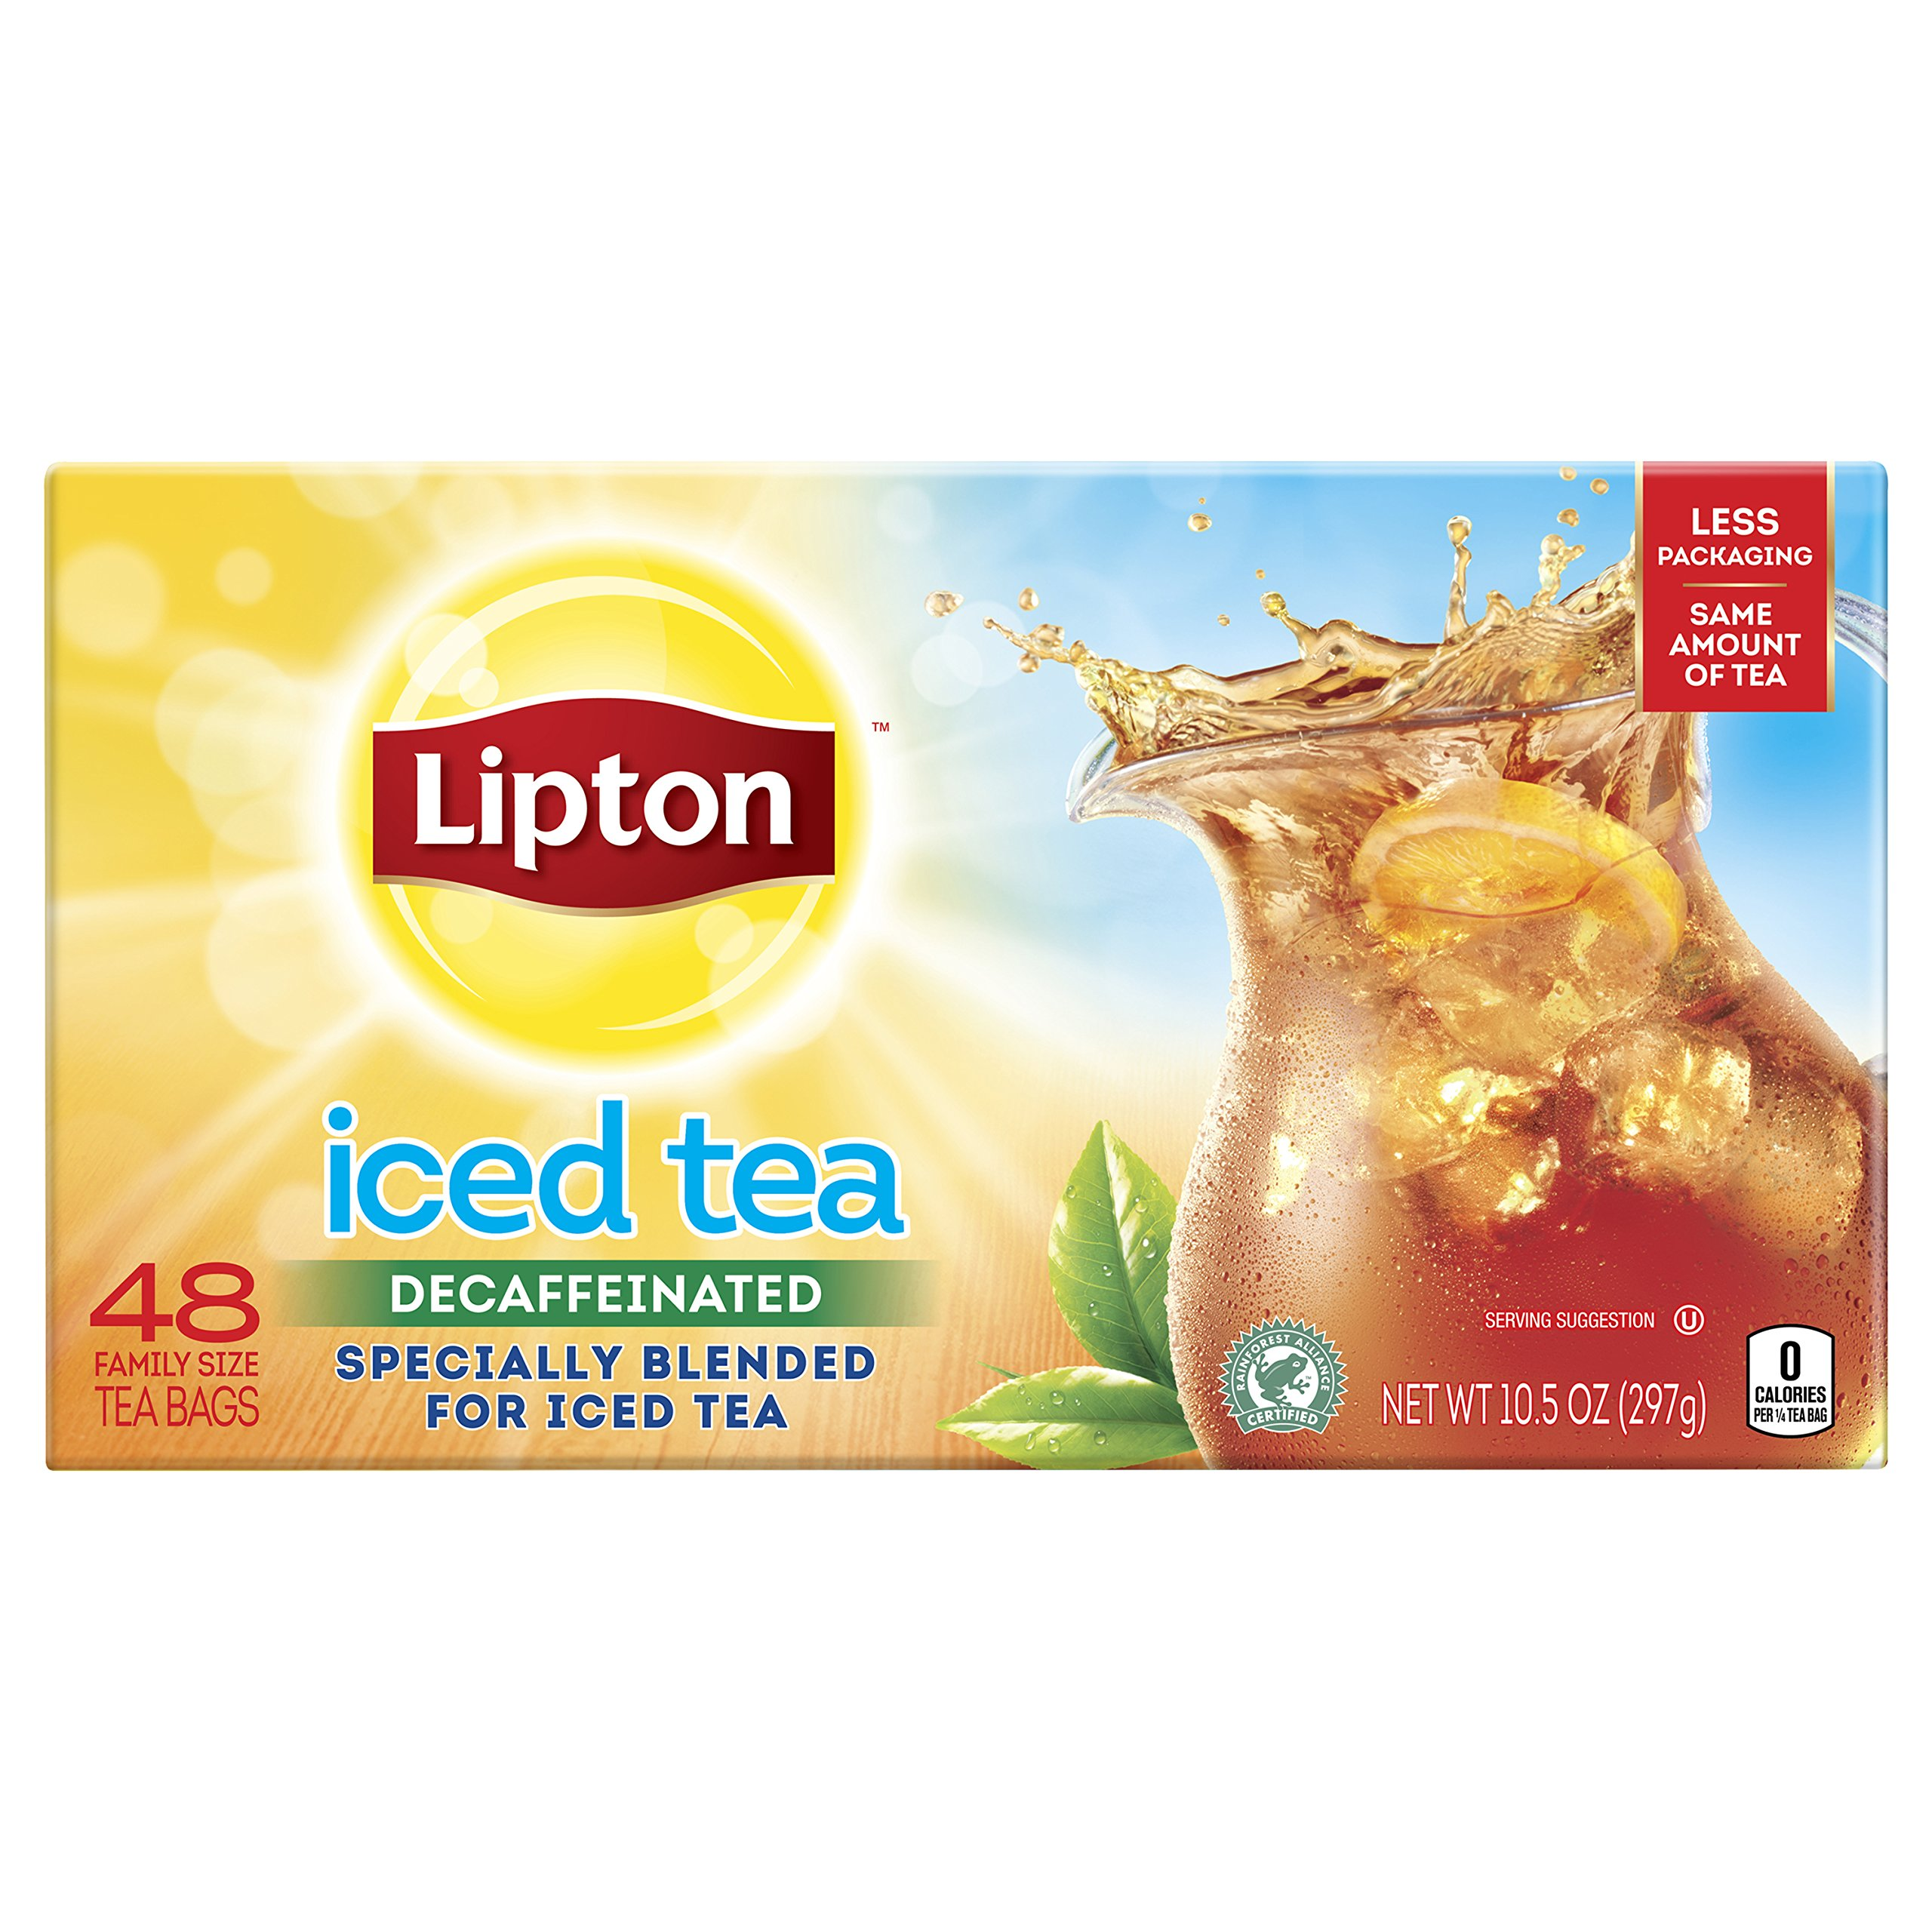 Lipton Family Iced Tea Bags, Black tea, 48 ct, pack of 6 by Lipton